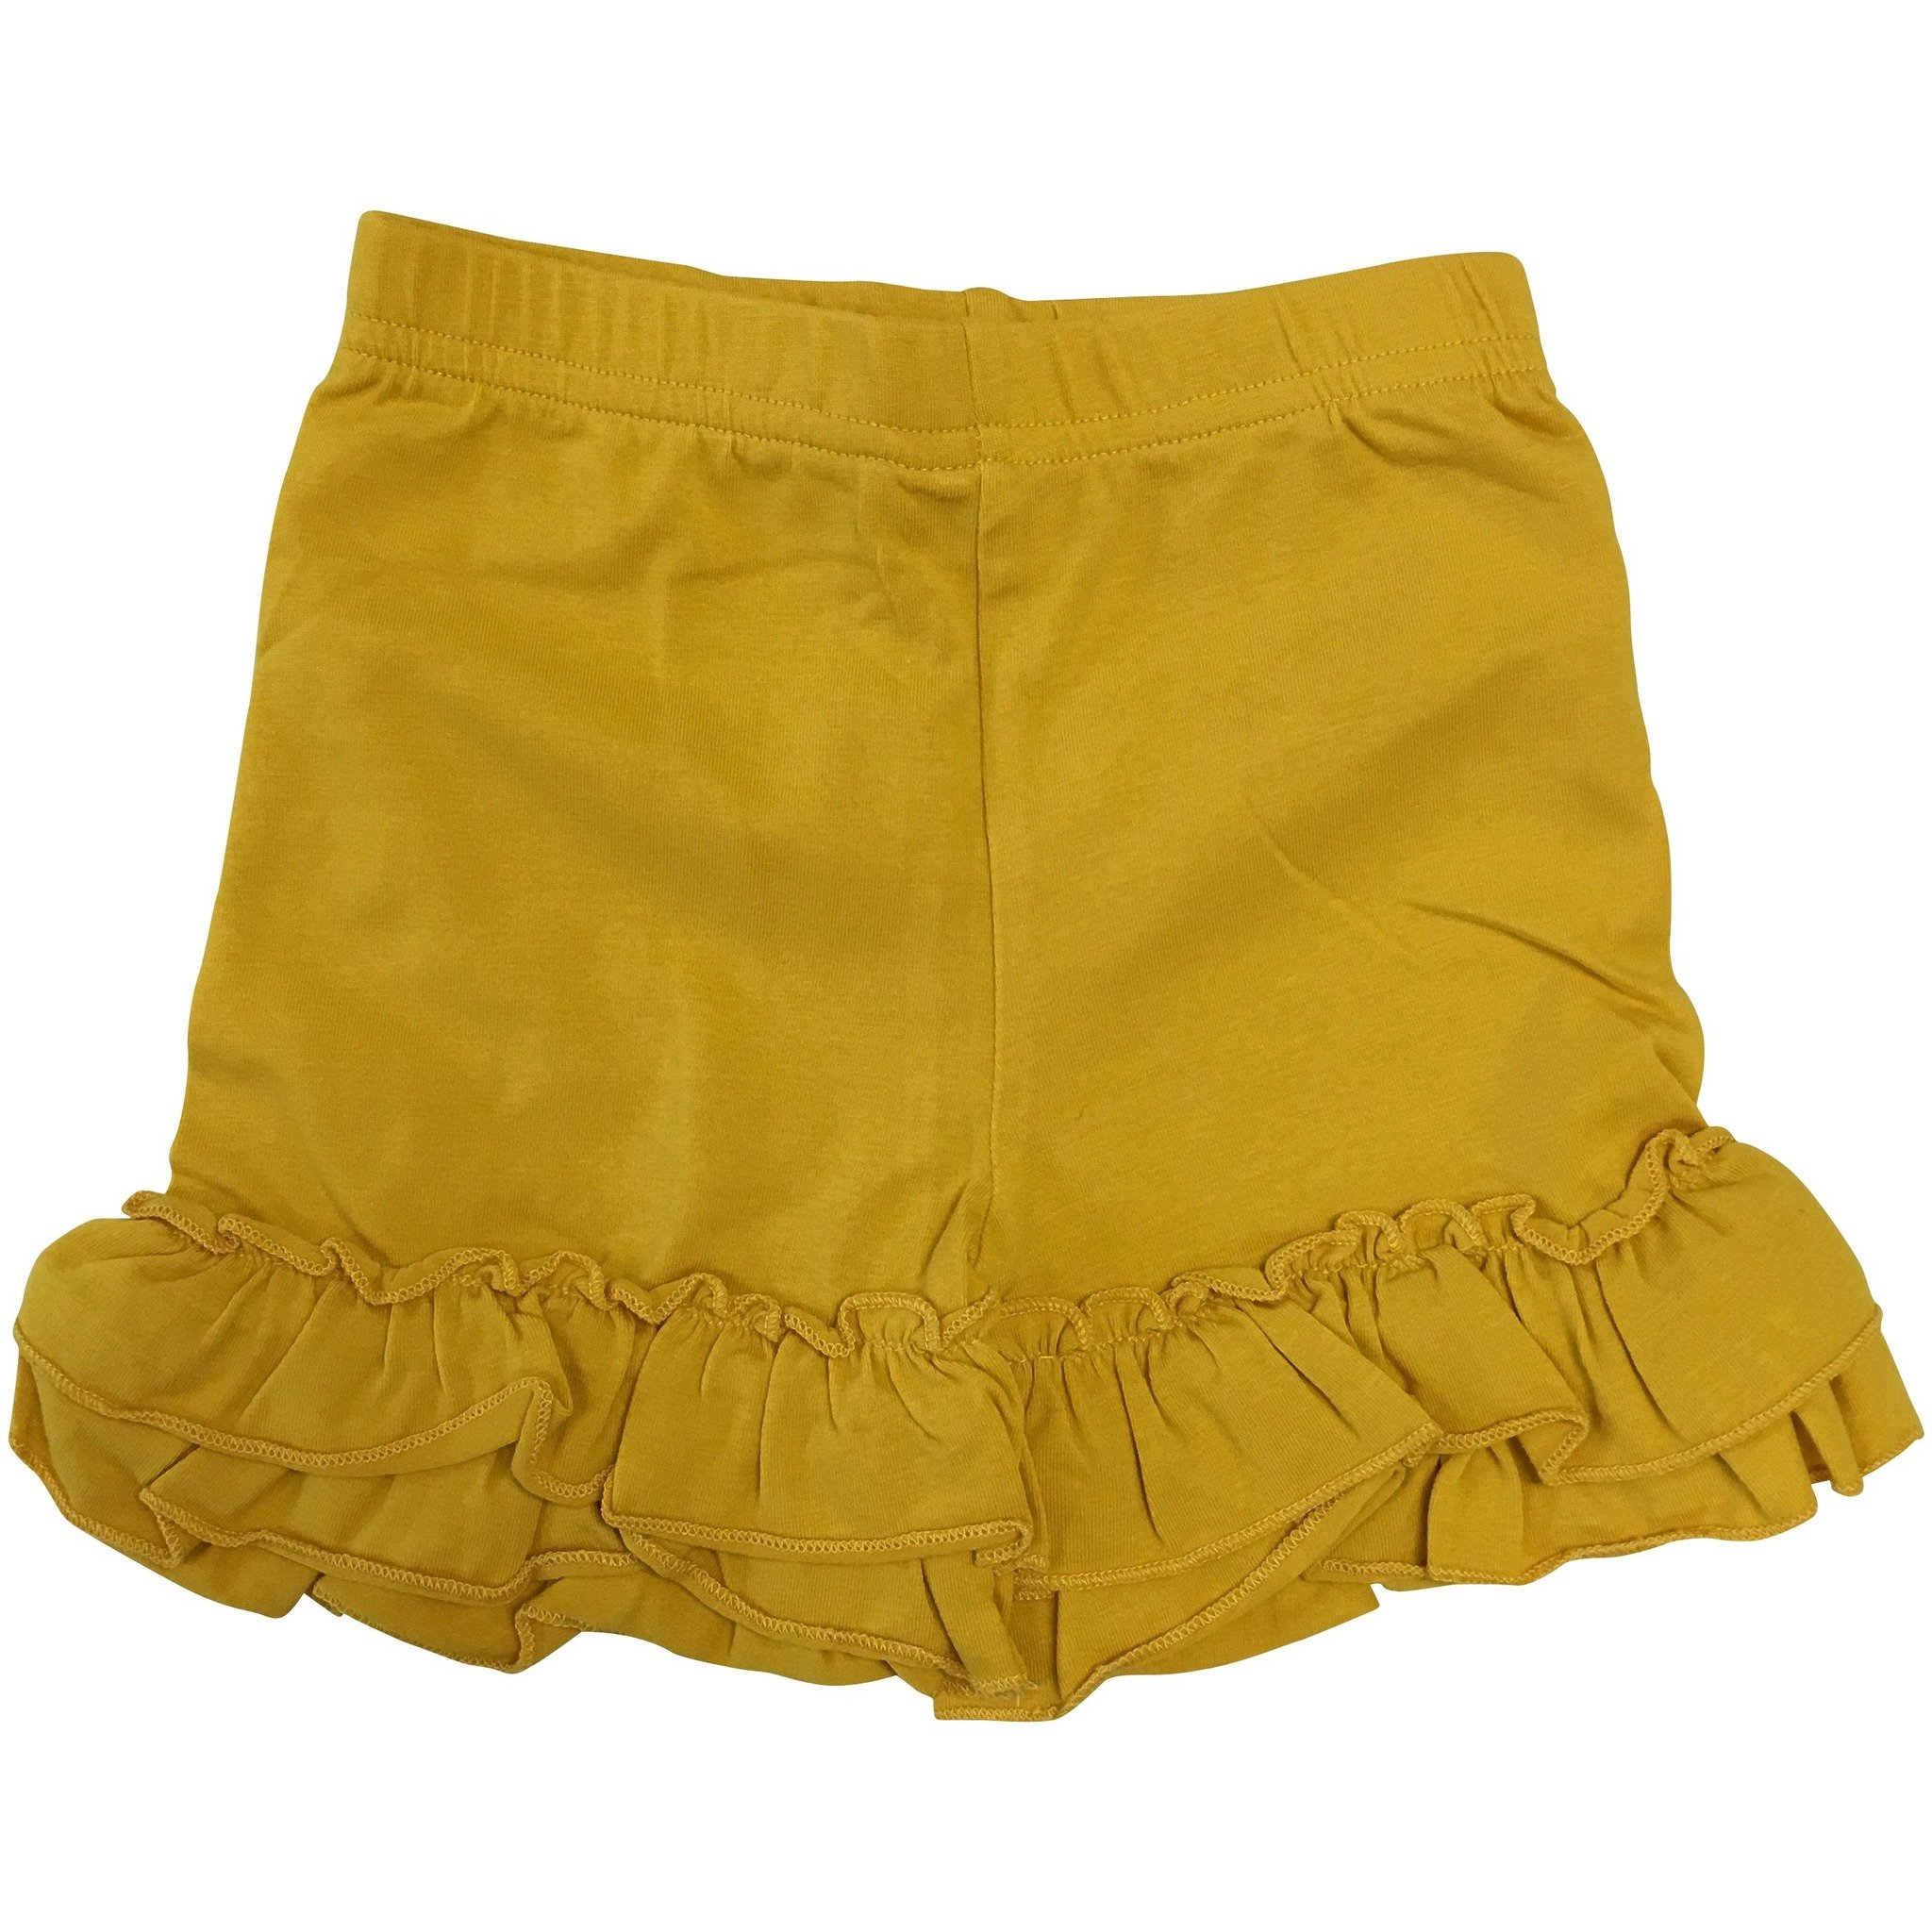 MJ Matches (Sept.) - Girls Ruffle Shorts PRE-ORDER